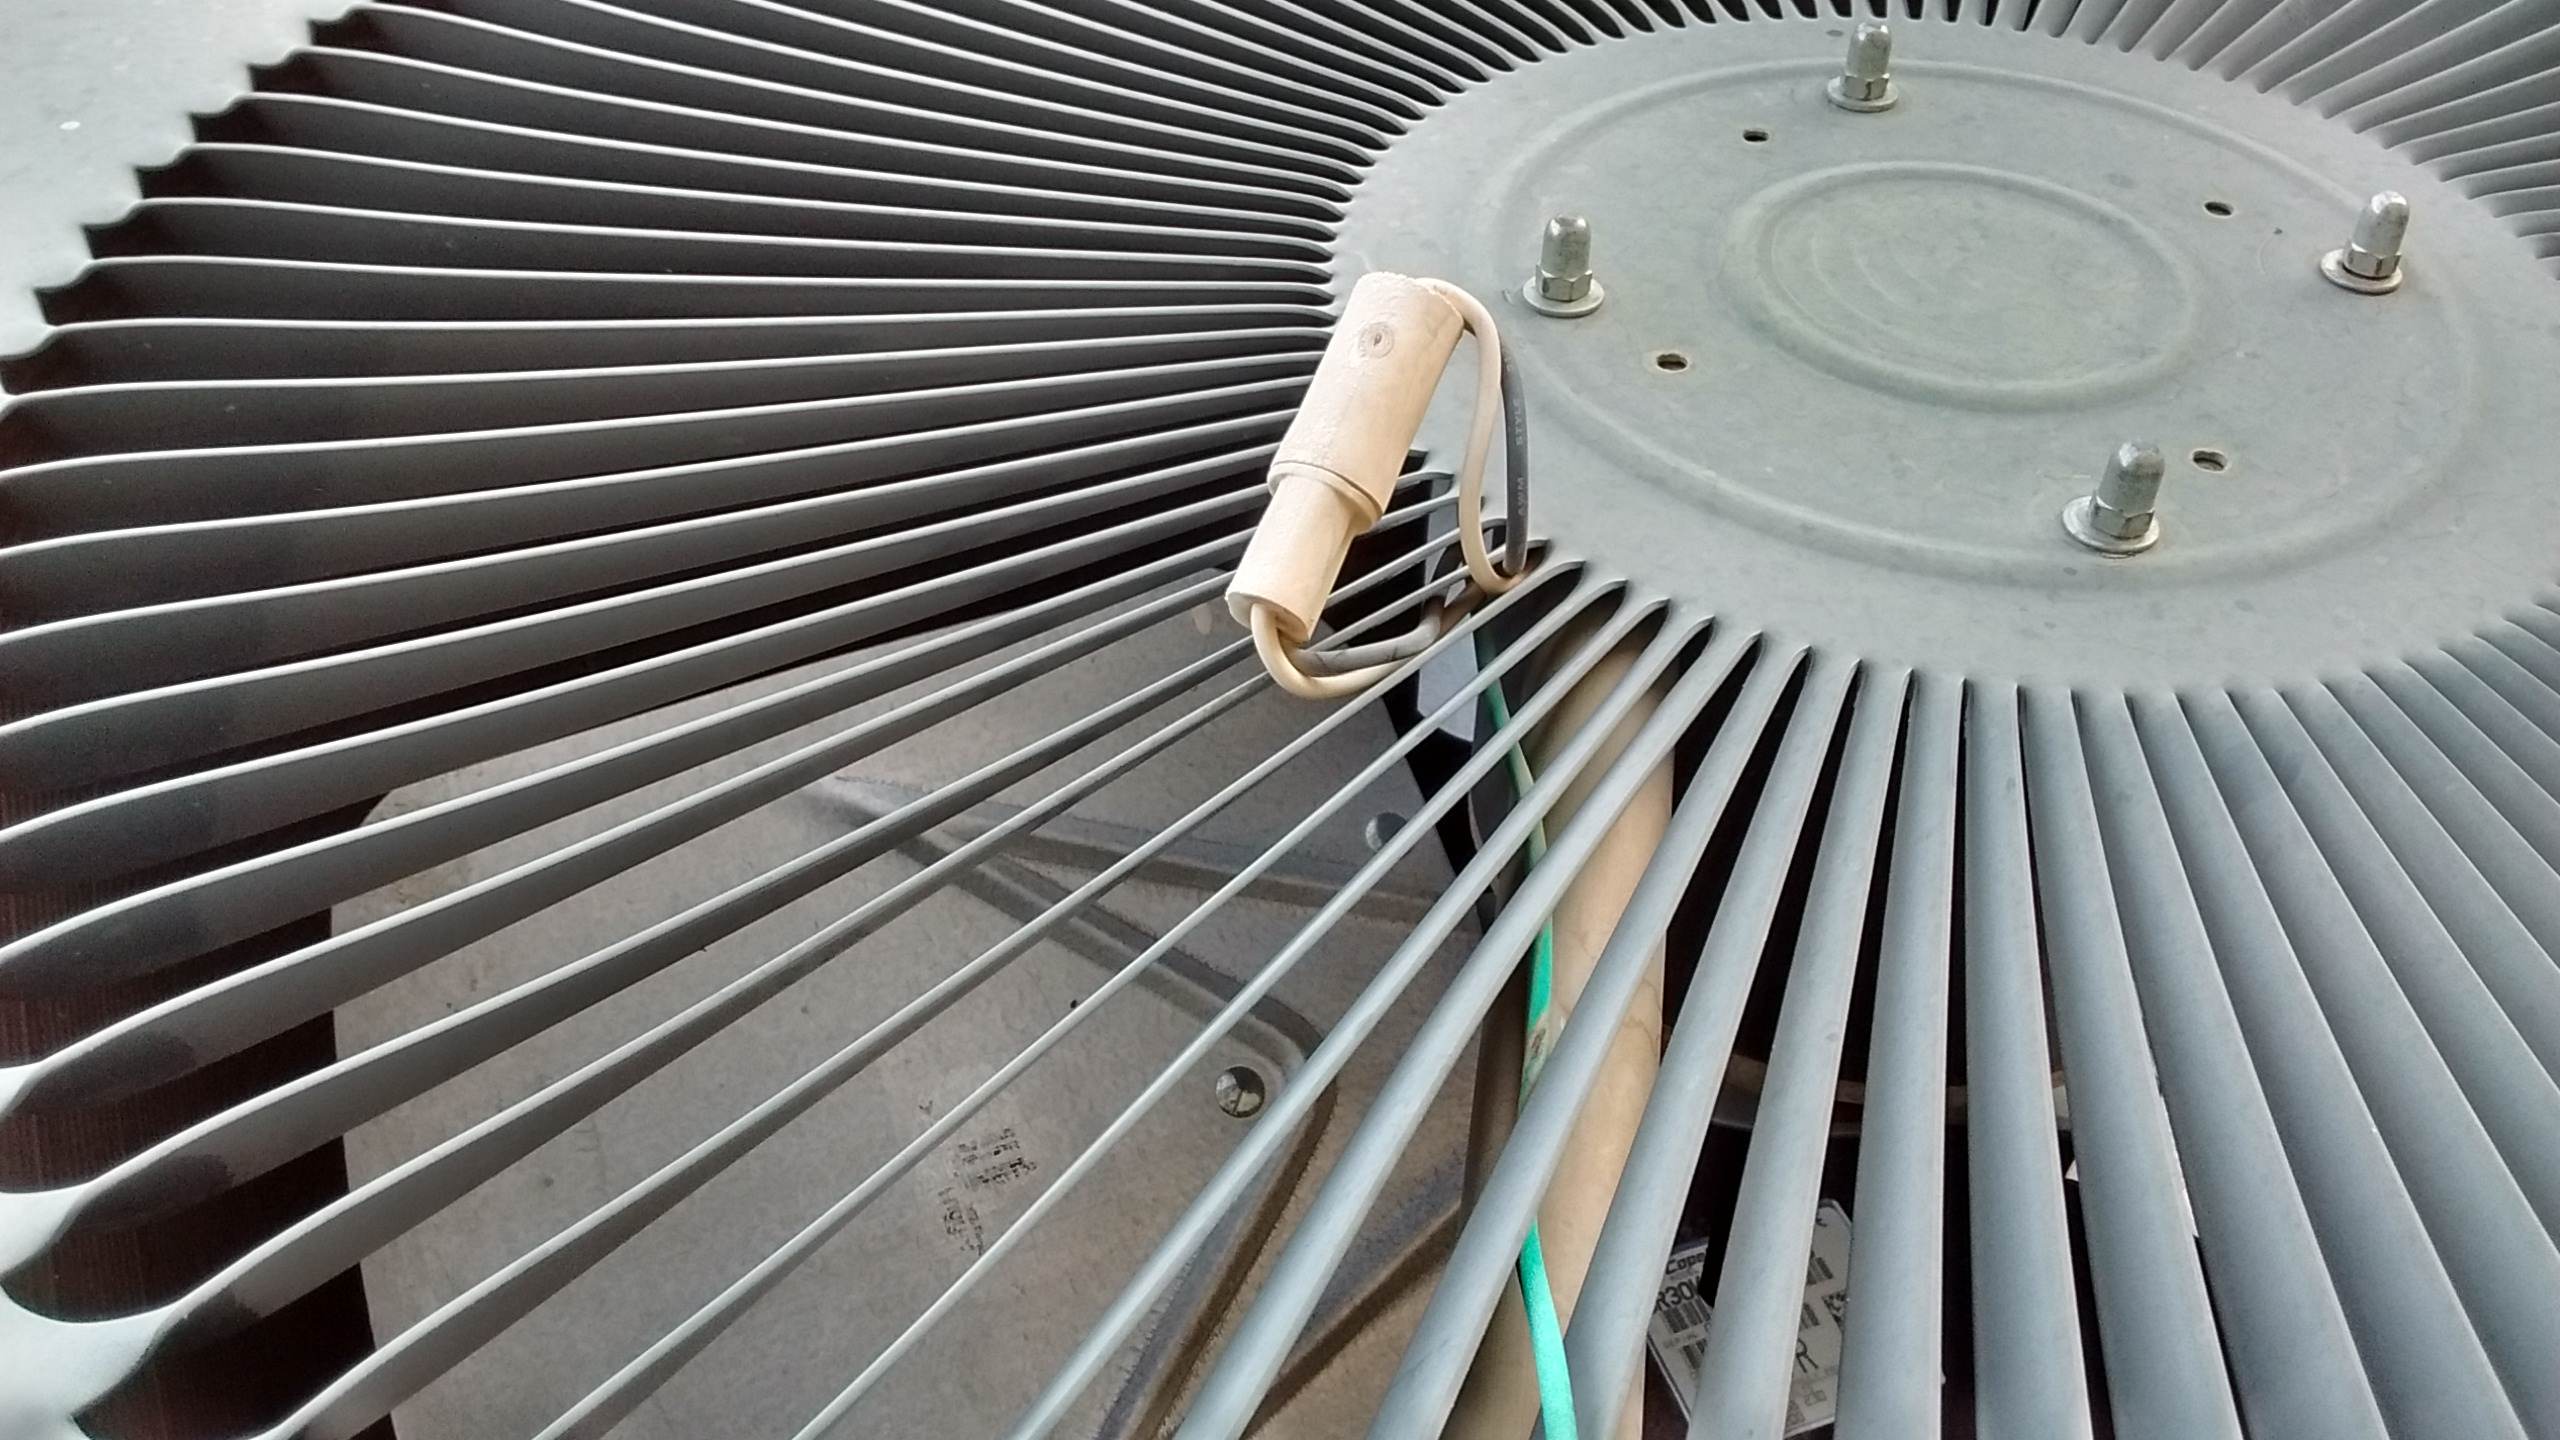 air conditioner with wires and plug from the fan motor sticking out from the top of the unit